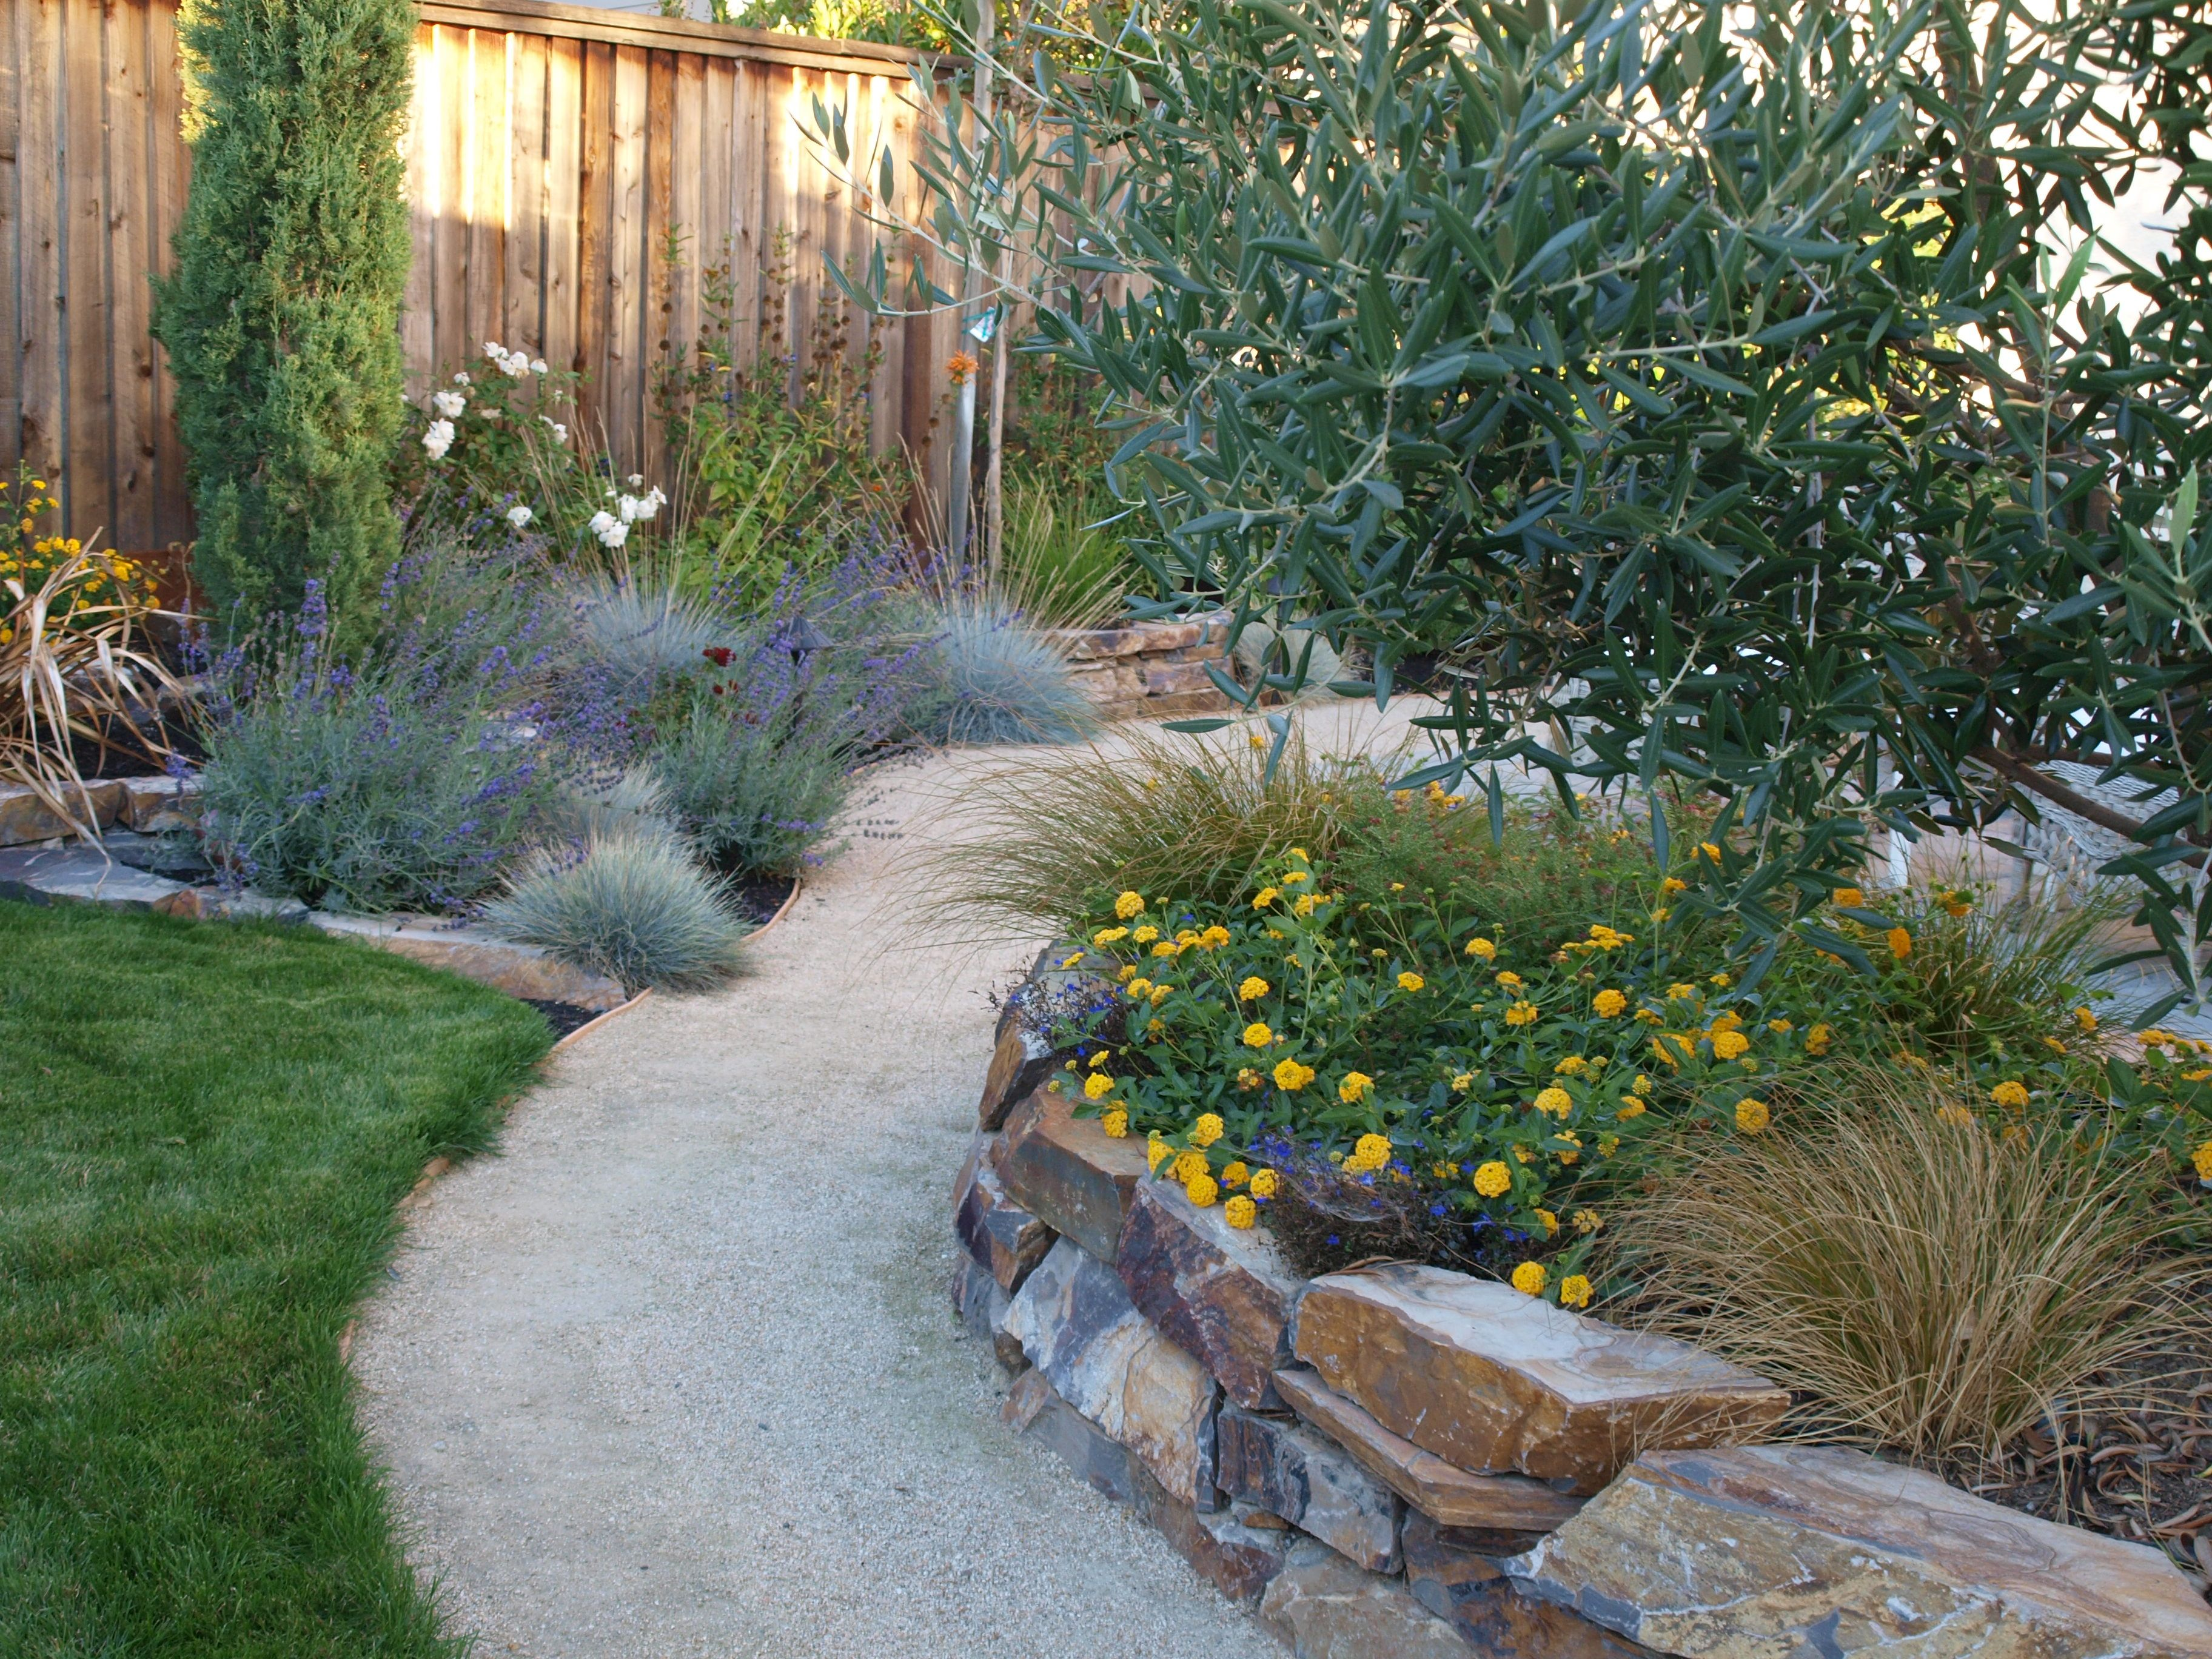 Decomposed Granite Pathway (With images) | Desert ... on Decomposed Granite Backyard Ideas id=47408